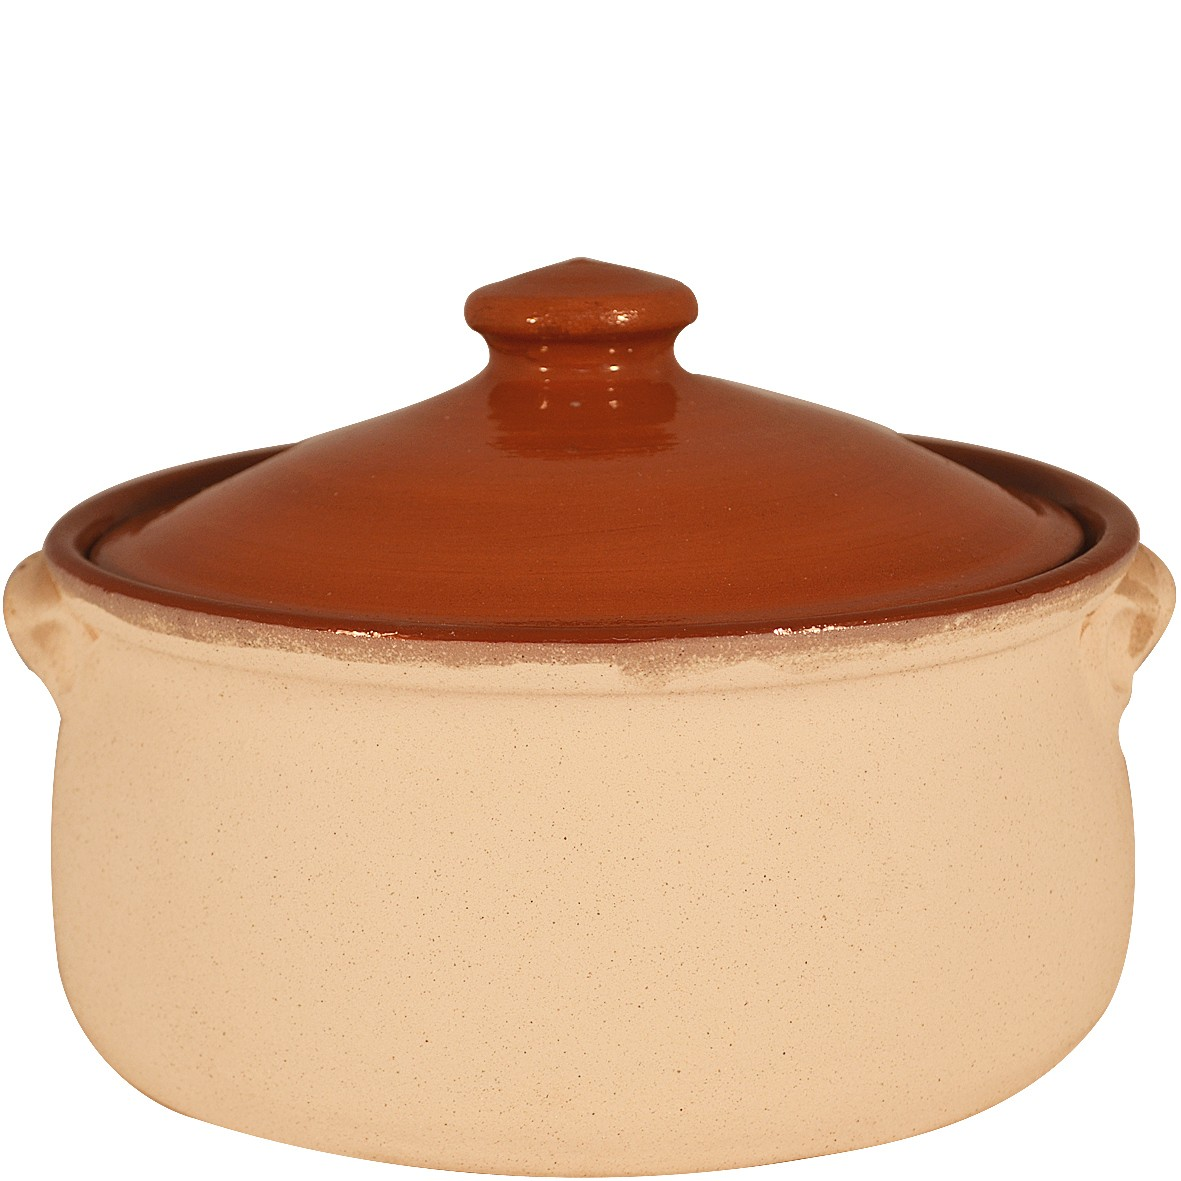 Cooking Pot Terracotta Cooking Pots Sand Coated